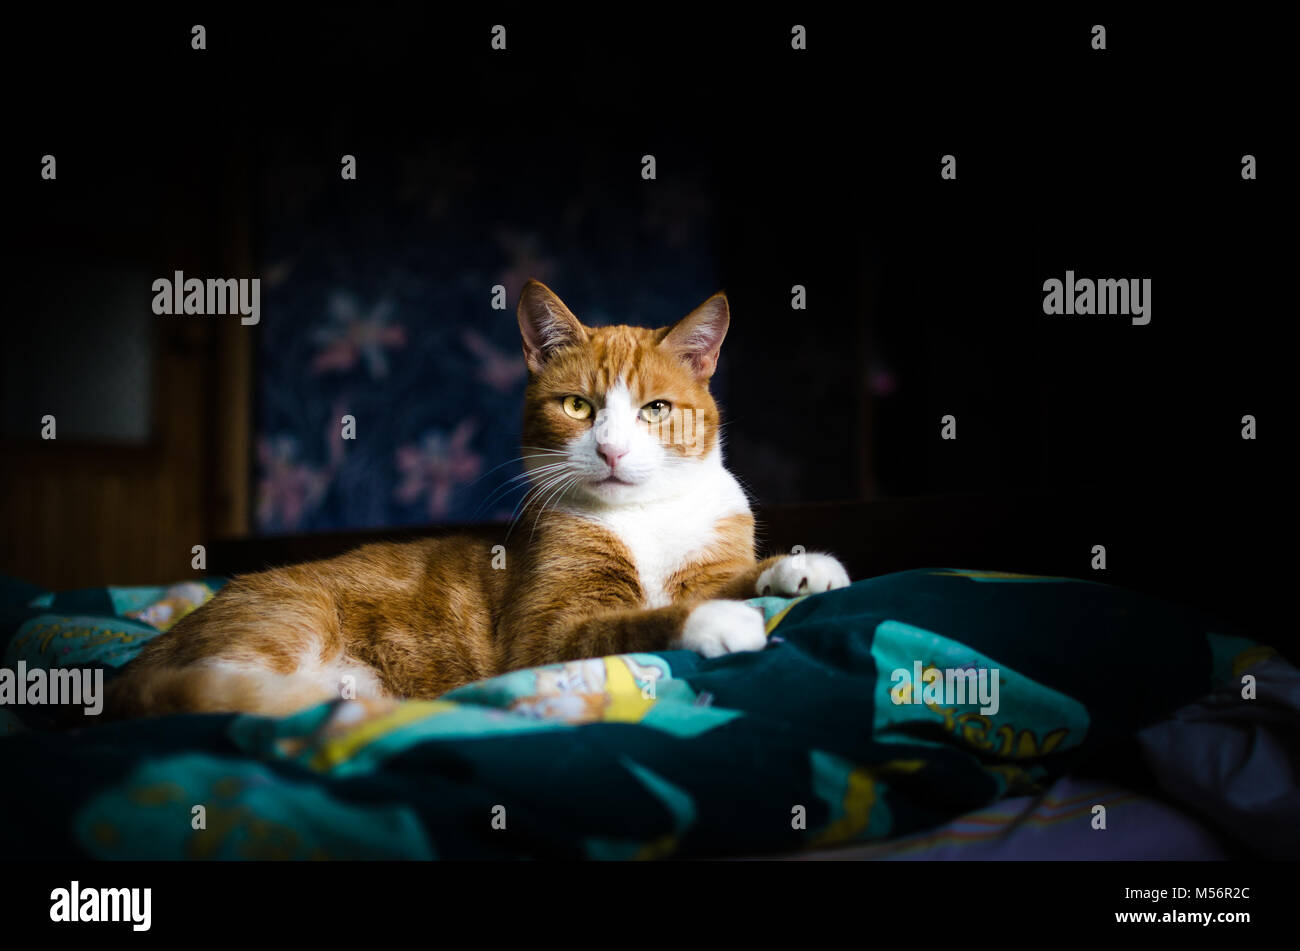 A portrait of a cat lying on the bed - Stock Image